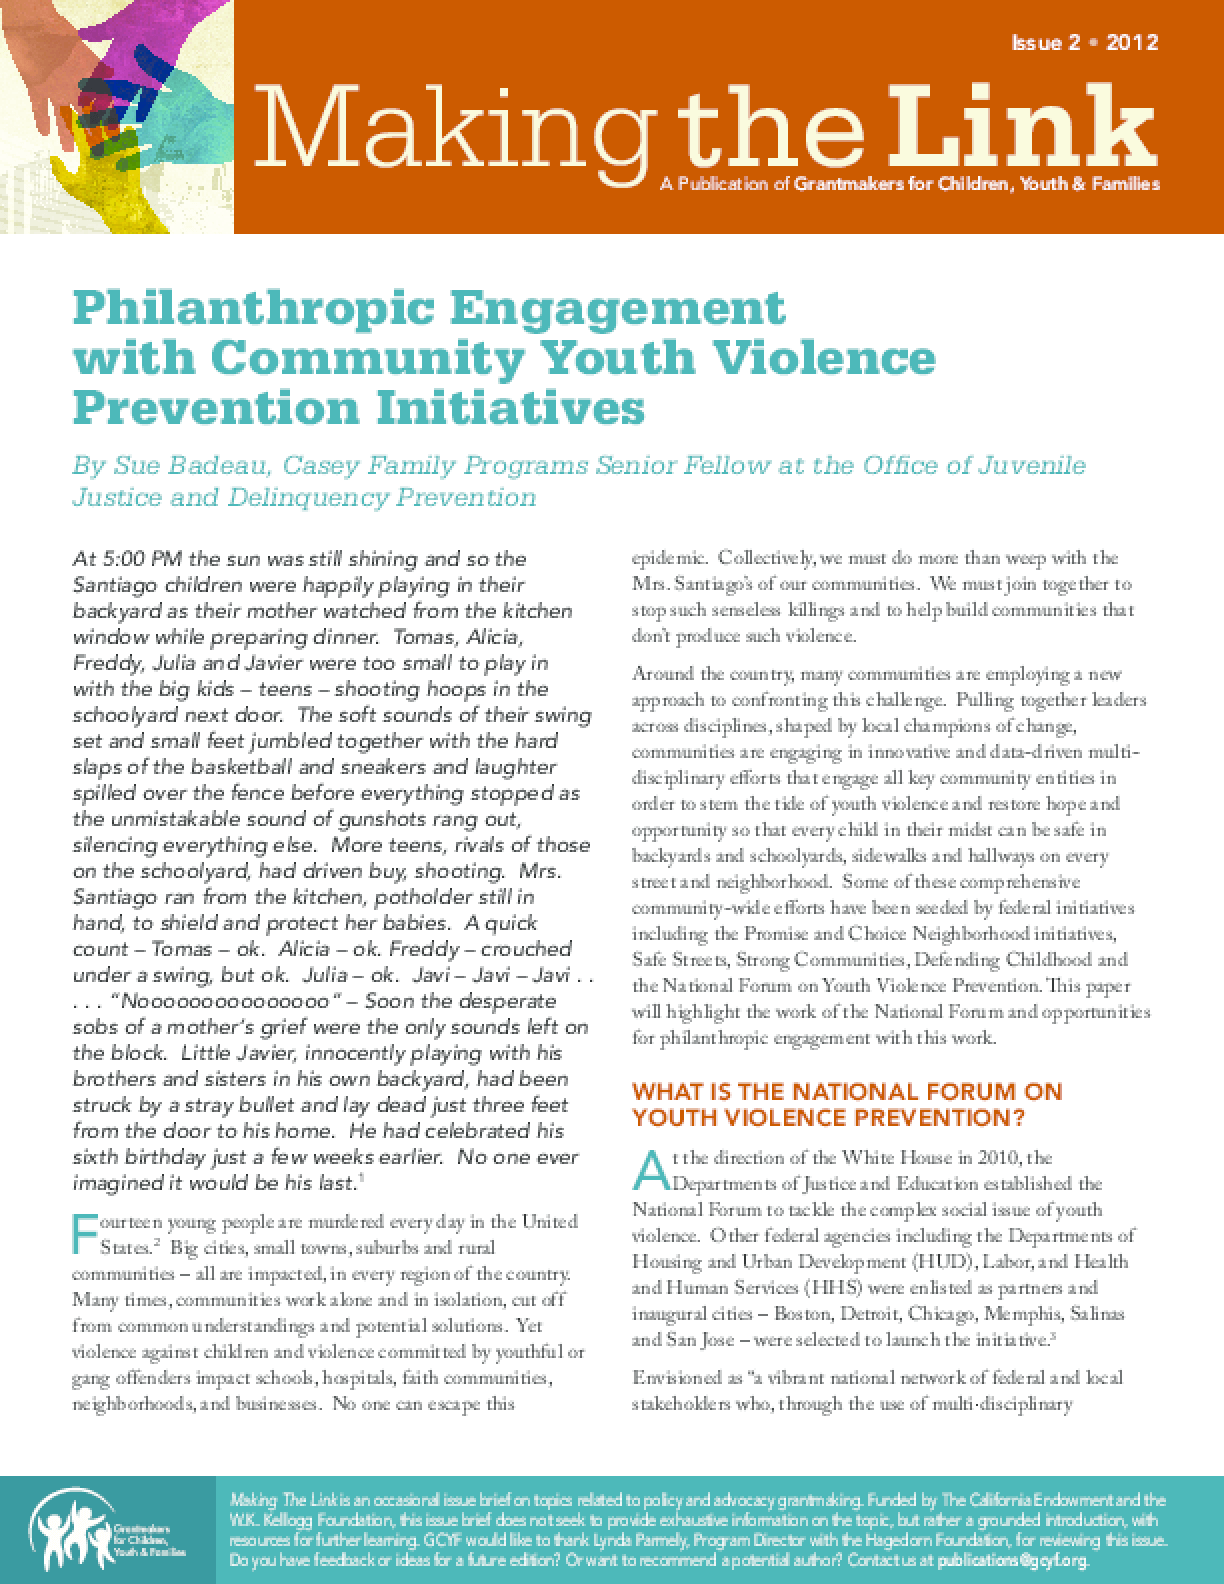 Philanthropic Engagement with Community Youth Violence Prevention Initiatives